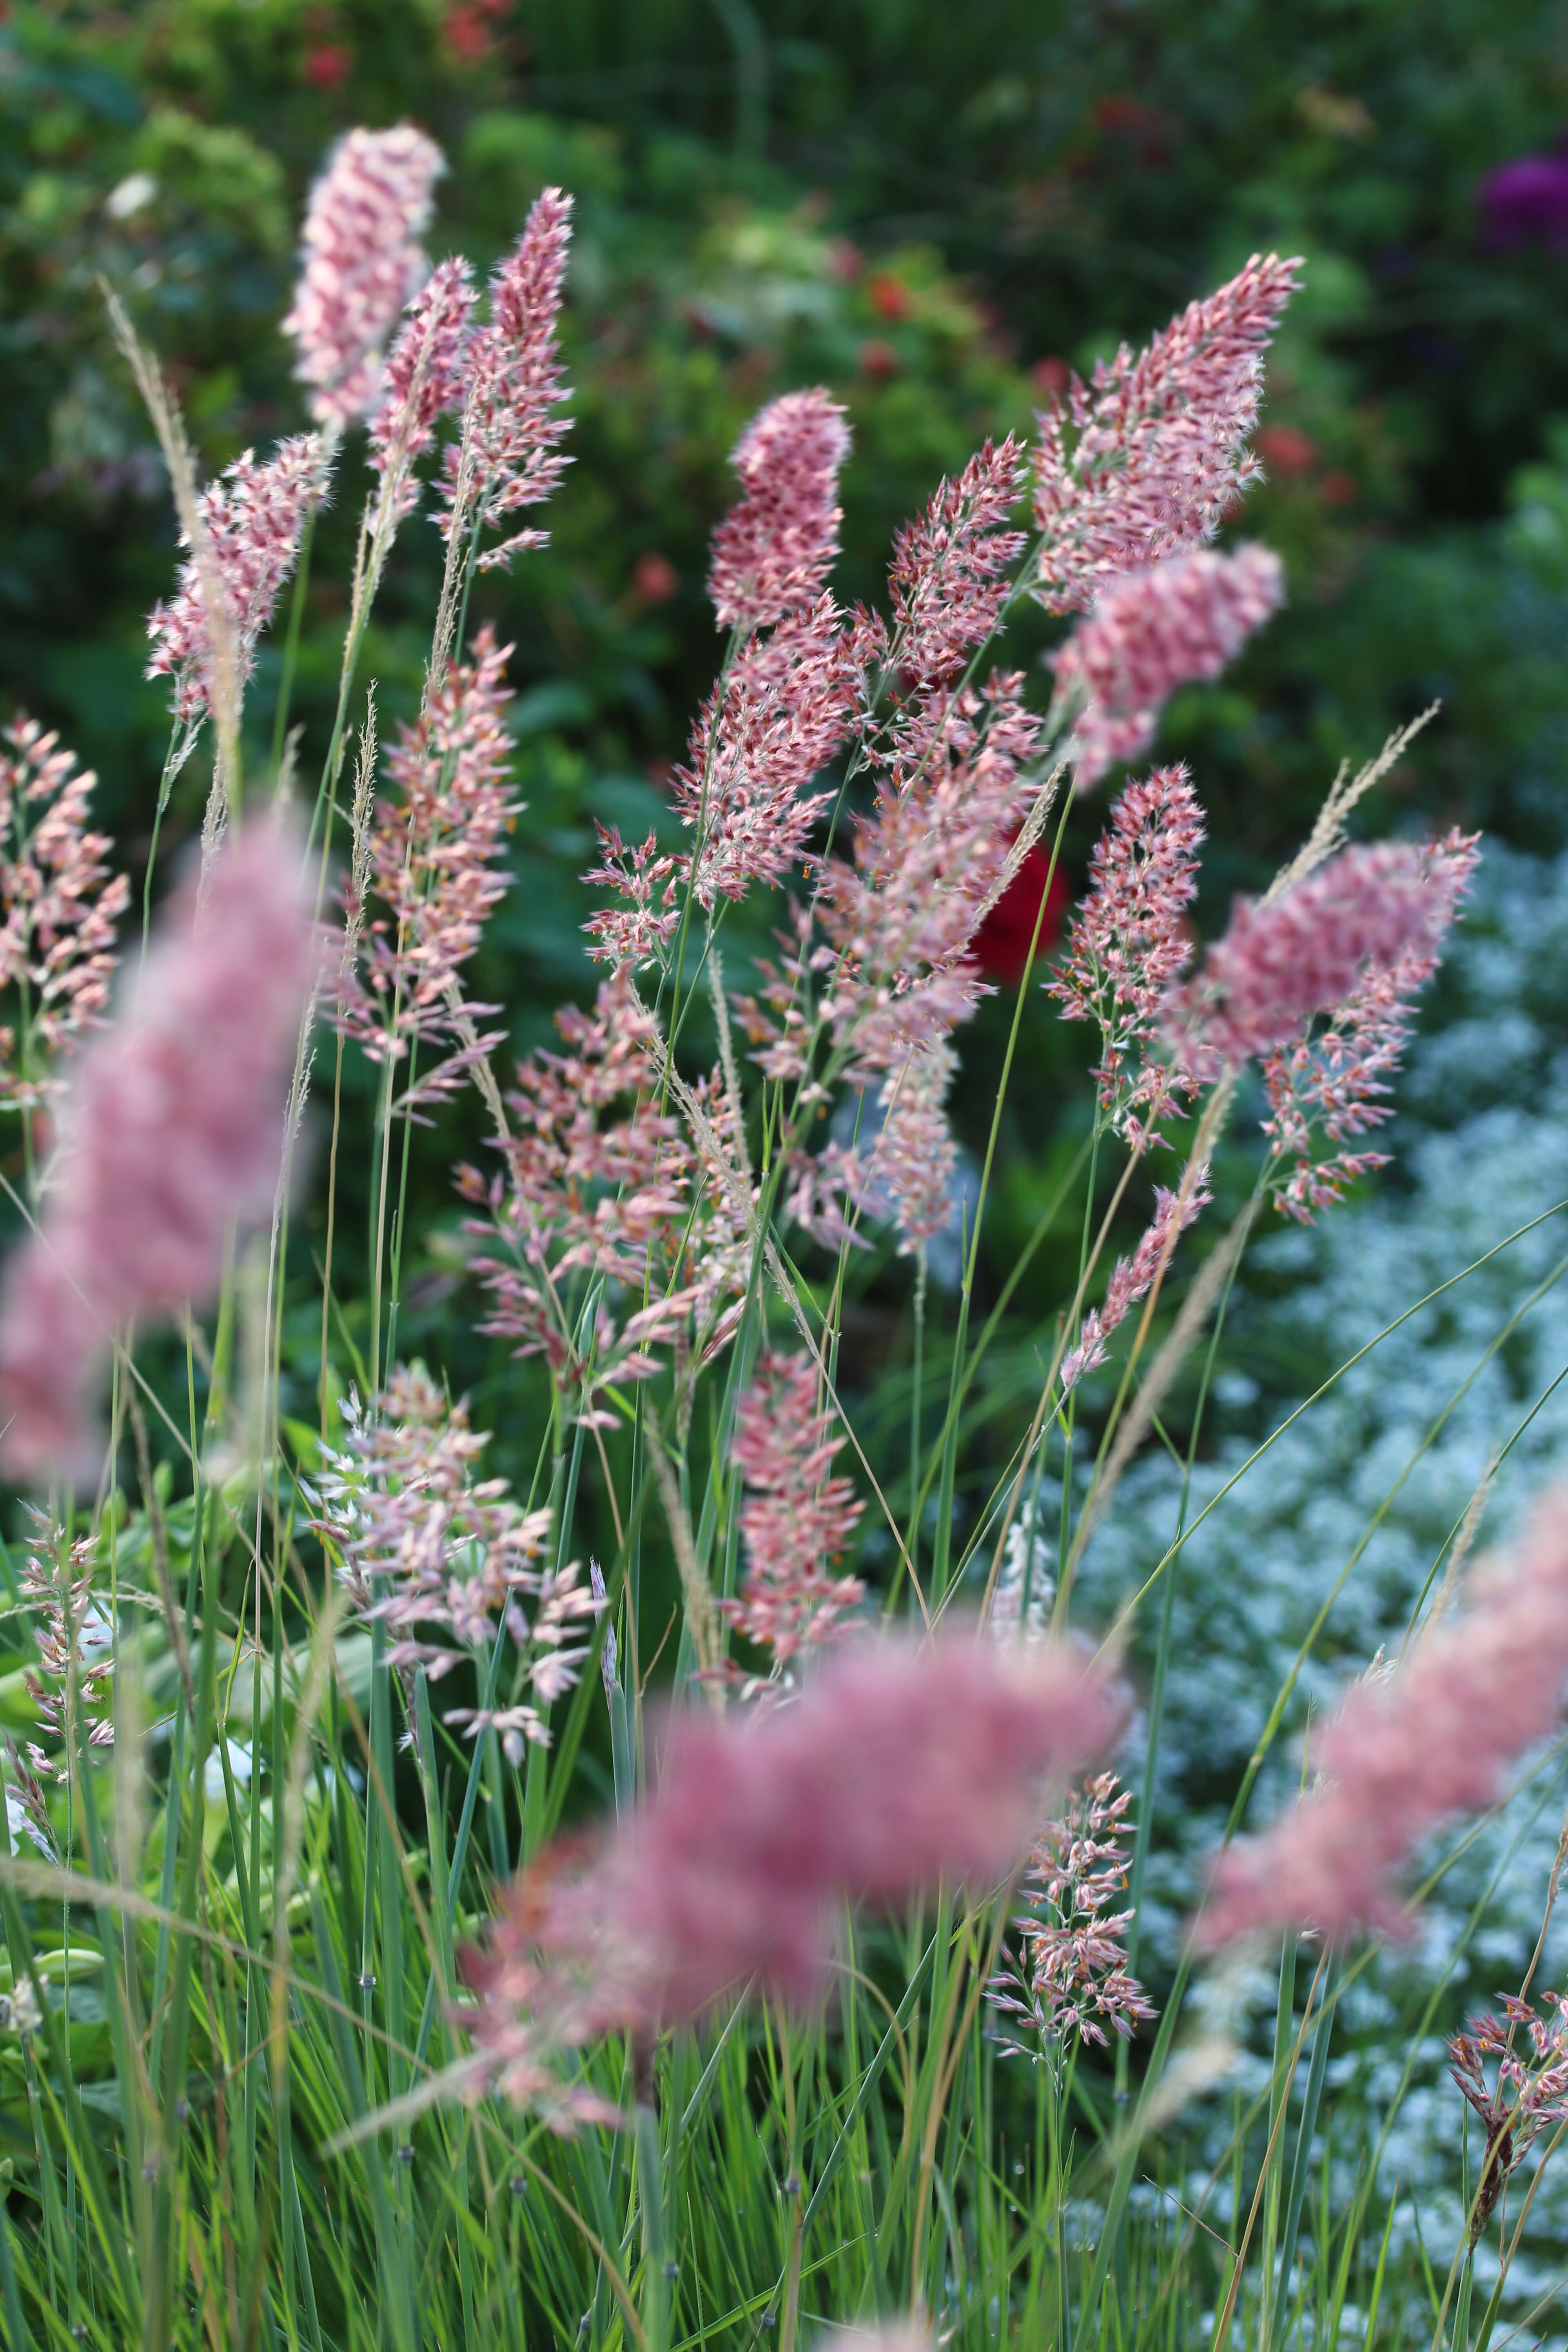 Melinis Savannah, also called Ruby Grass, blooms along the paths in the Rose Garden. Photo by Leslie Hunter.